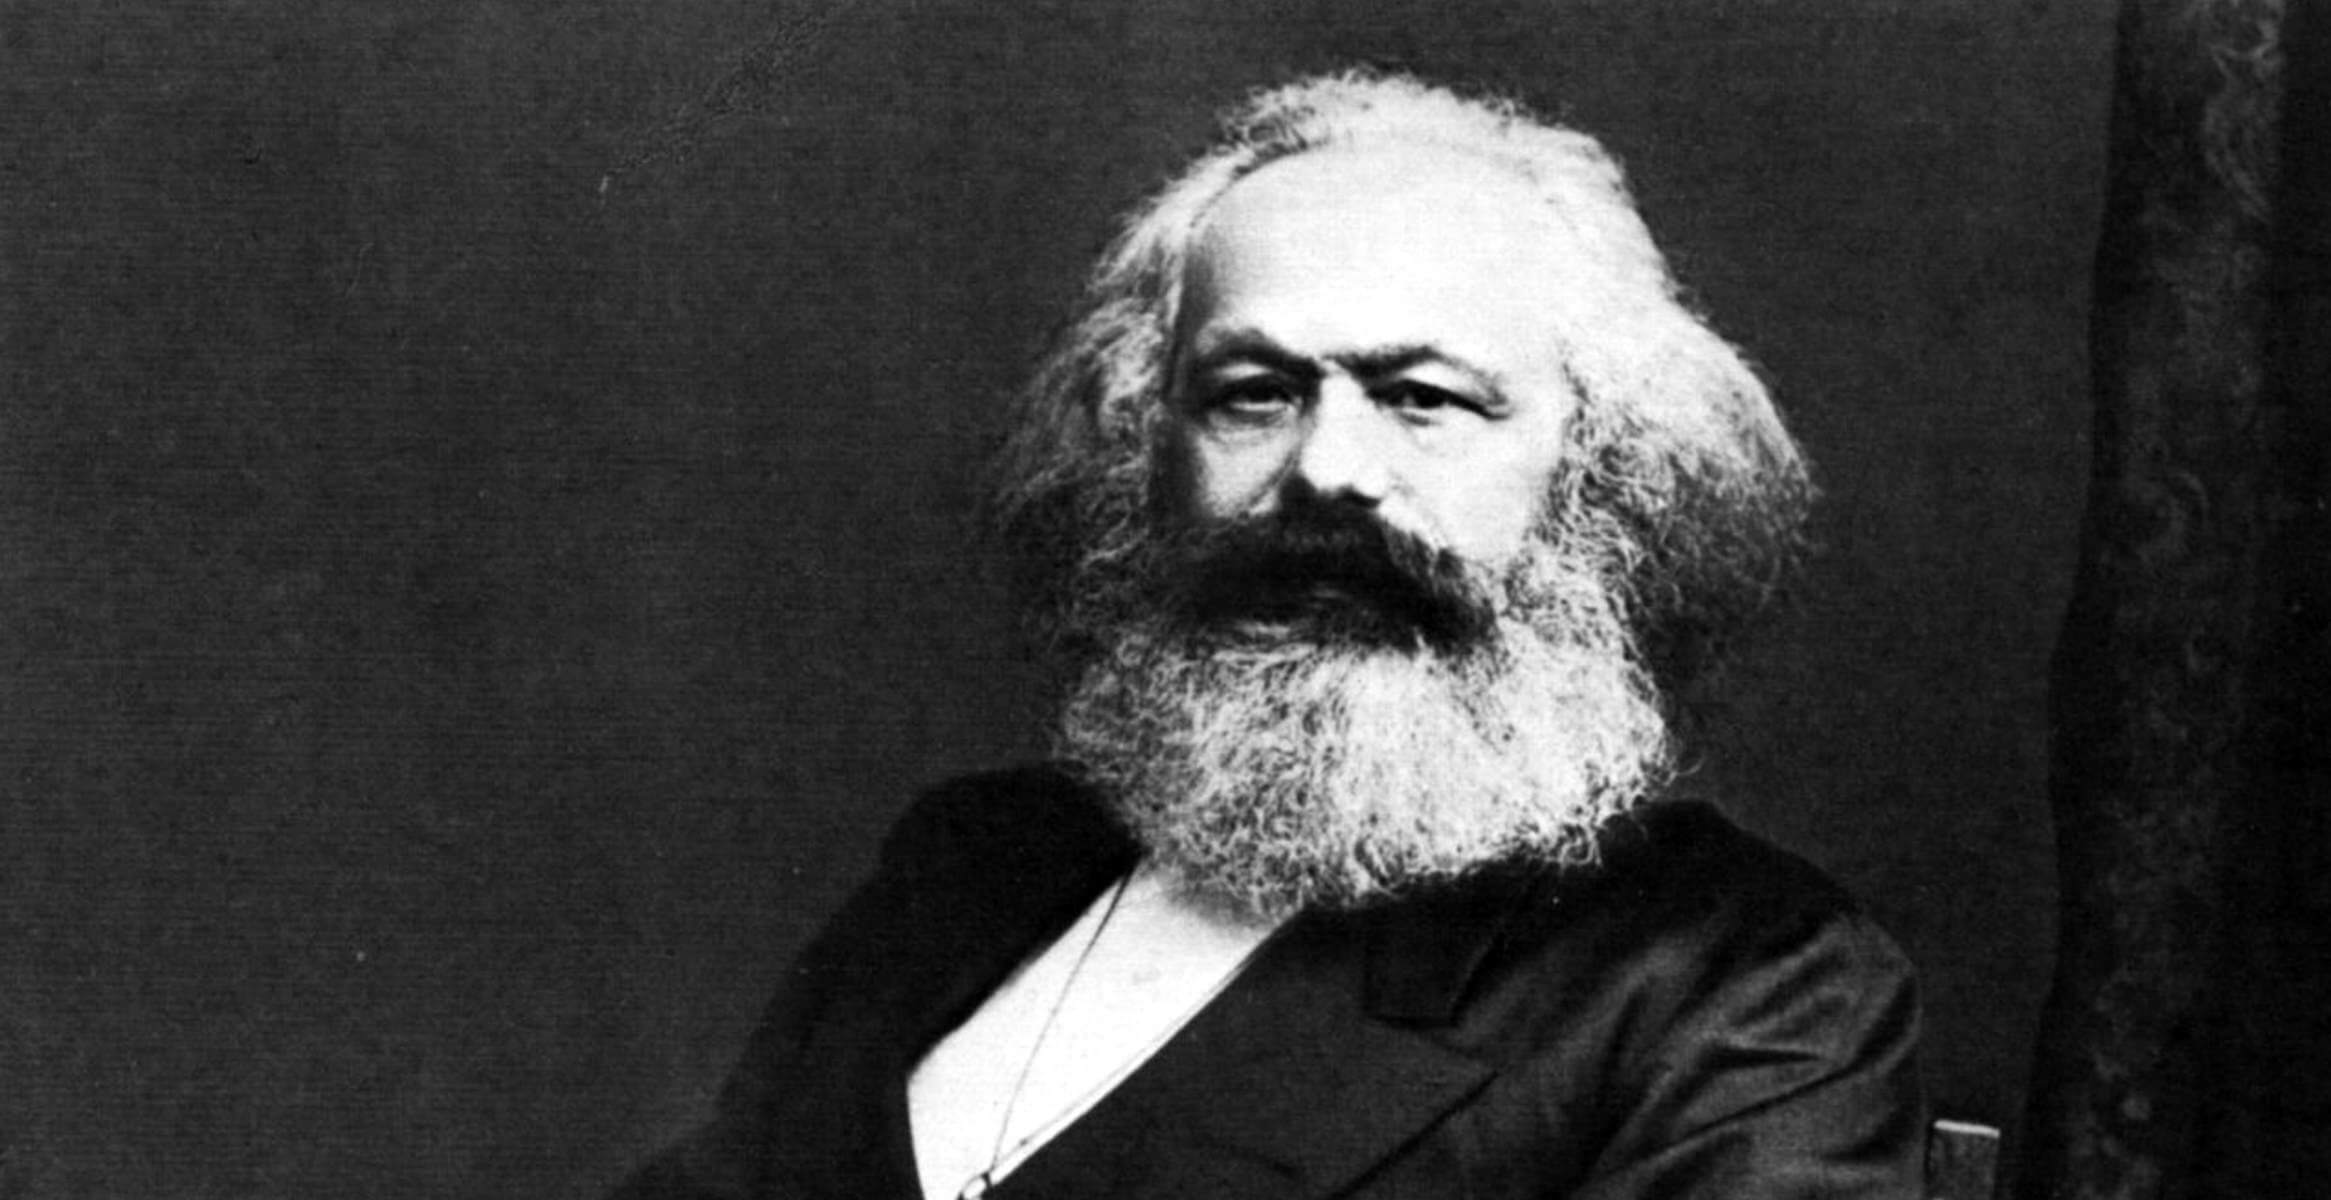 the influence of the life of marx on his works